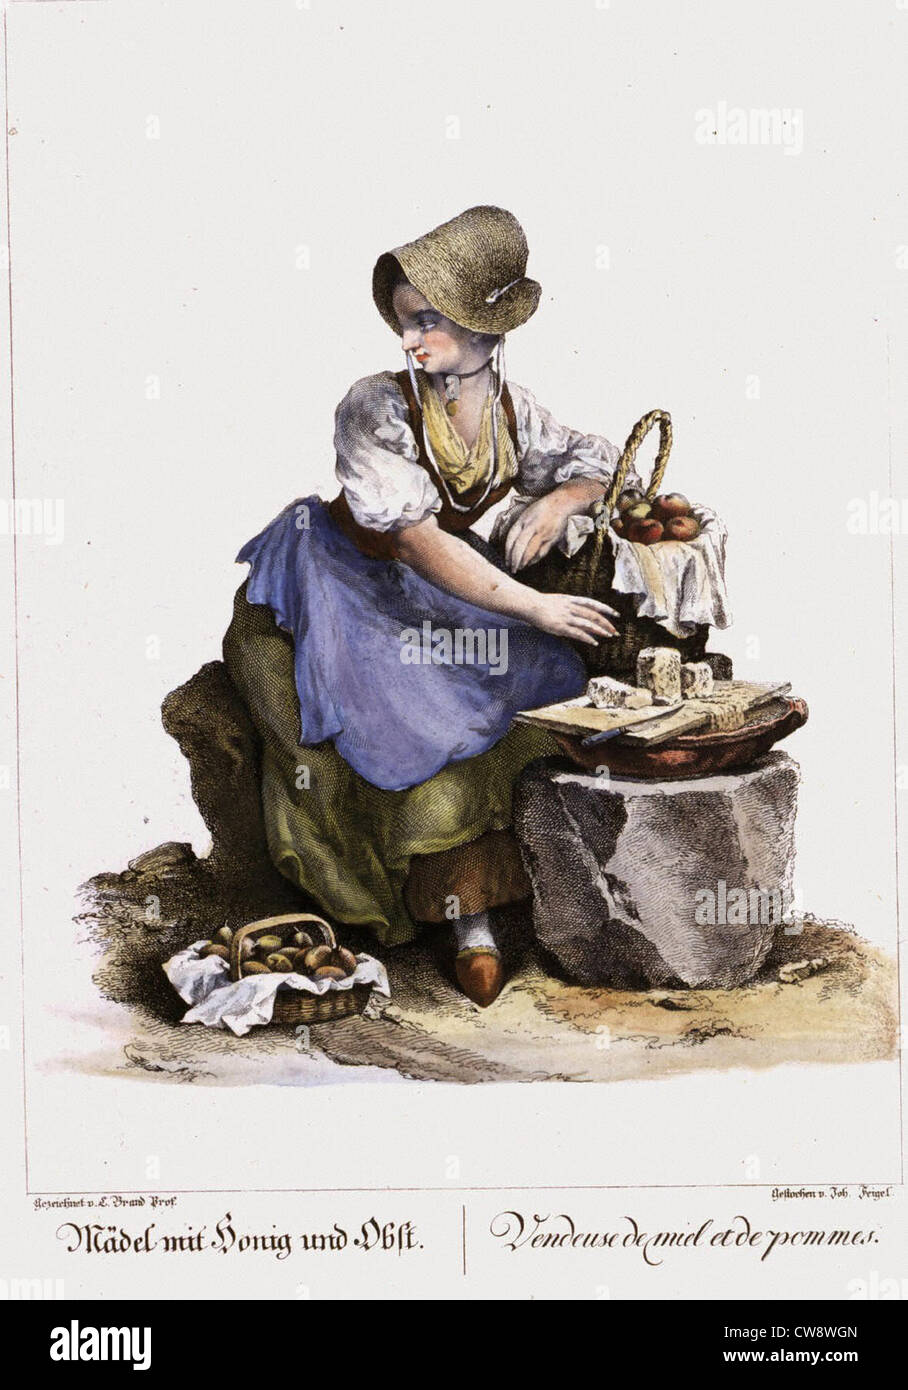 Street trades in Vienna in 18th century fruit cheese vendor - Stock Image